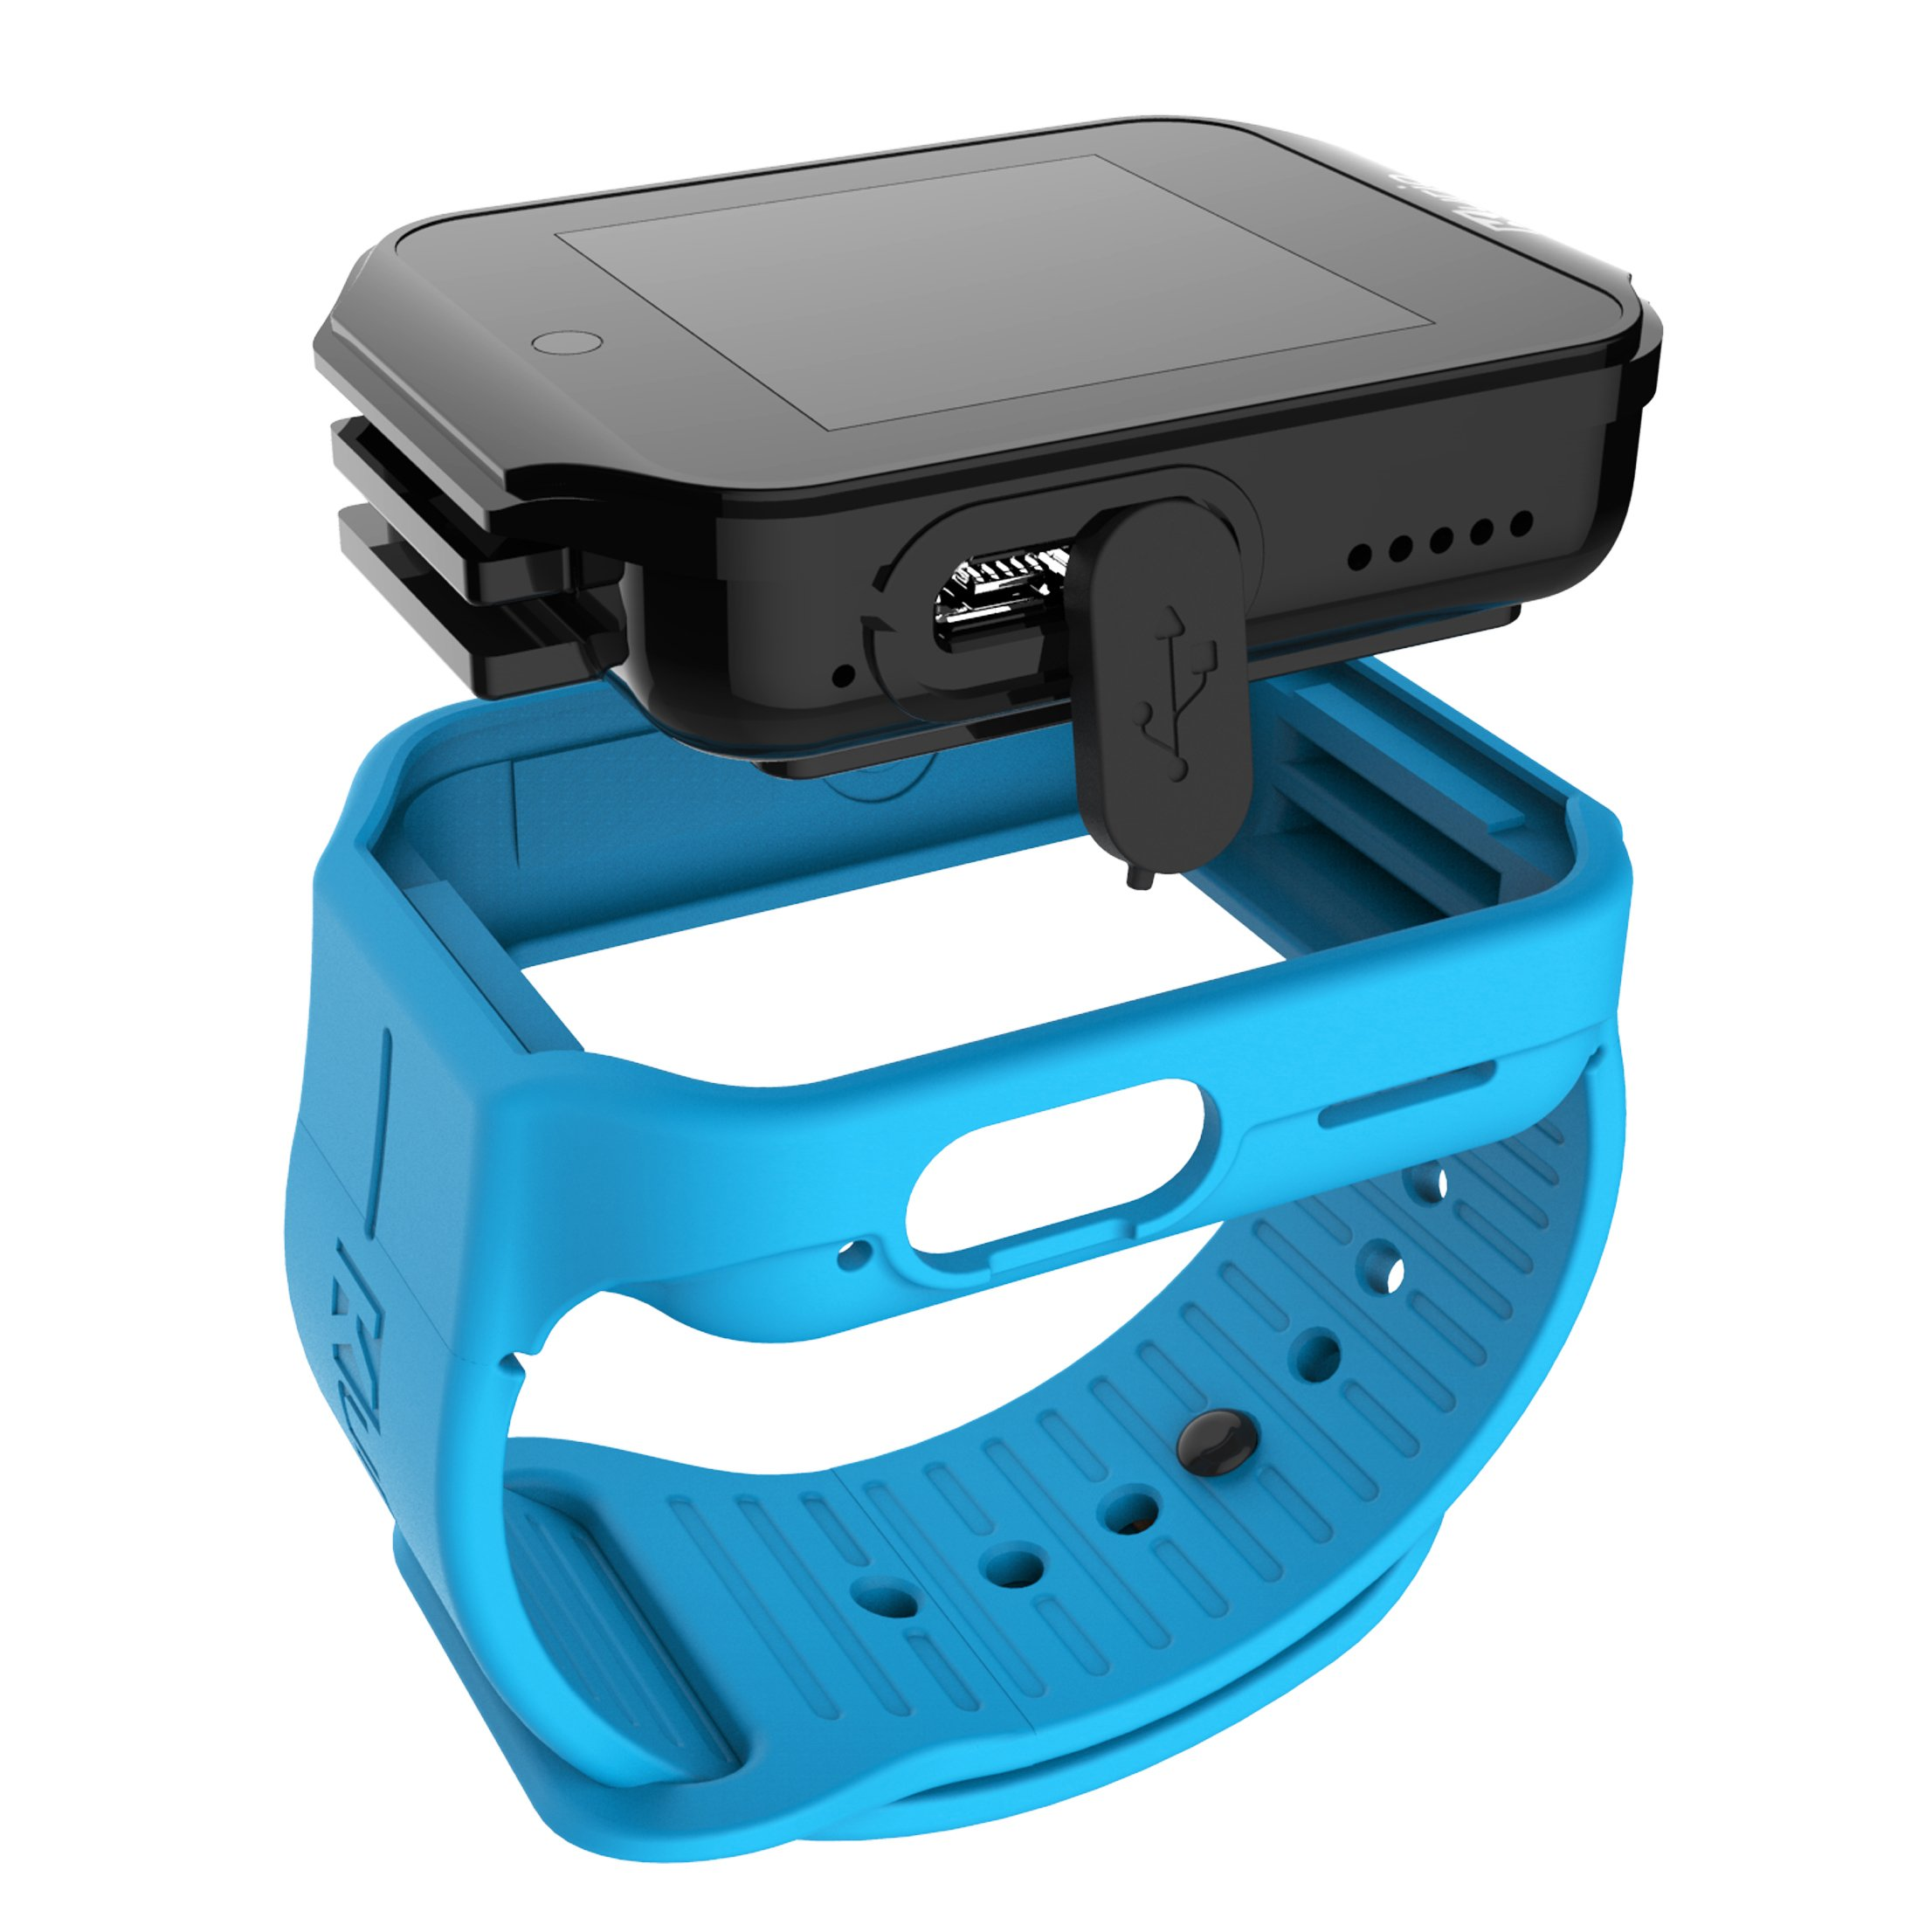 Kurio Watch 2.0+ The Ultimate Smartwatch Built for Kids with 2 Bands, Blue and Color Change by KD Interactive (Image #5)